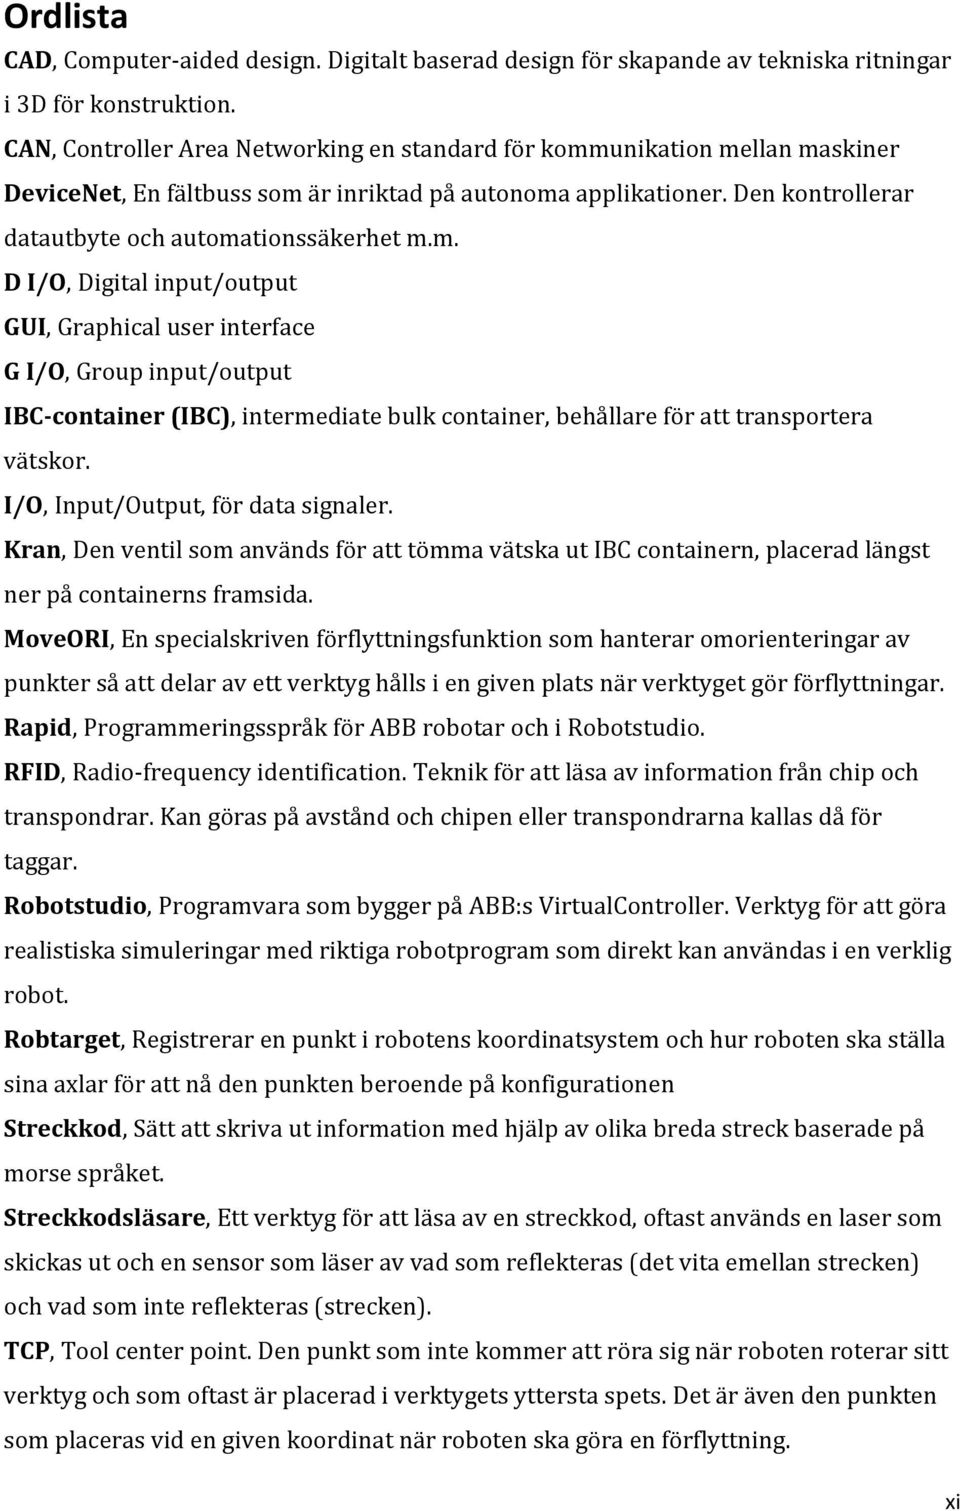 unikation mellan maskiner DeviceNet, En fältbuss som är inriktad på autonoma applikationer. Den kontrollerar datautbyte och automationssäkerhet m.m. D I/O, Digital input/output GUI, Graphical user interface G I/O, Group input/output IBC-container (IBC), intermediate bulk container, behållare för att transportera vätskor.